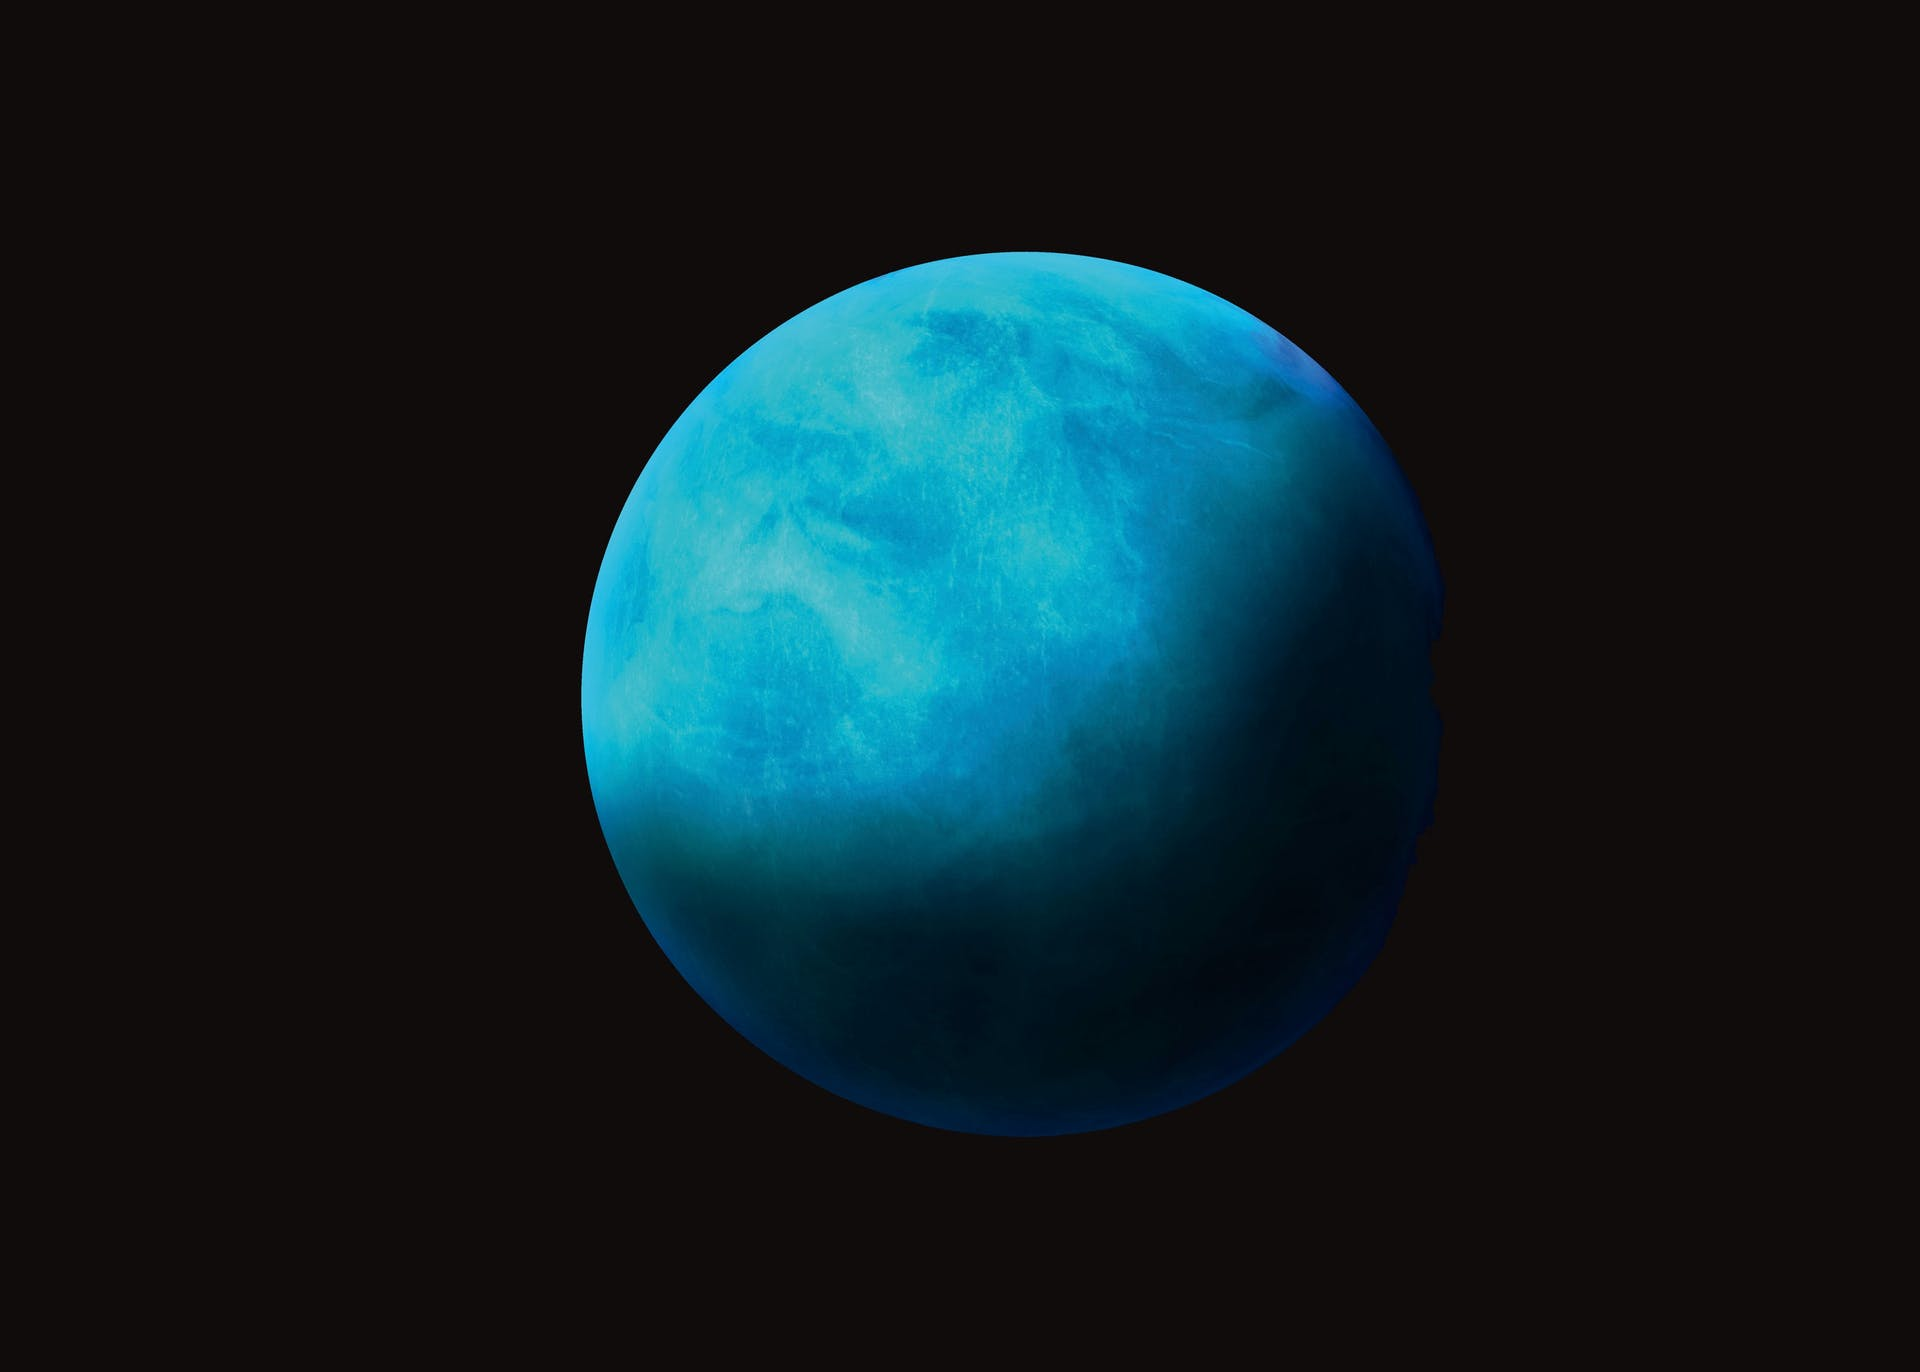 Uranus cold planet